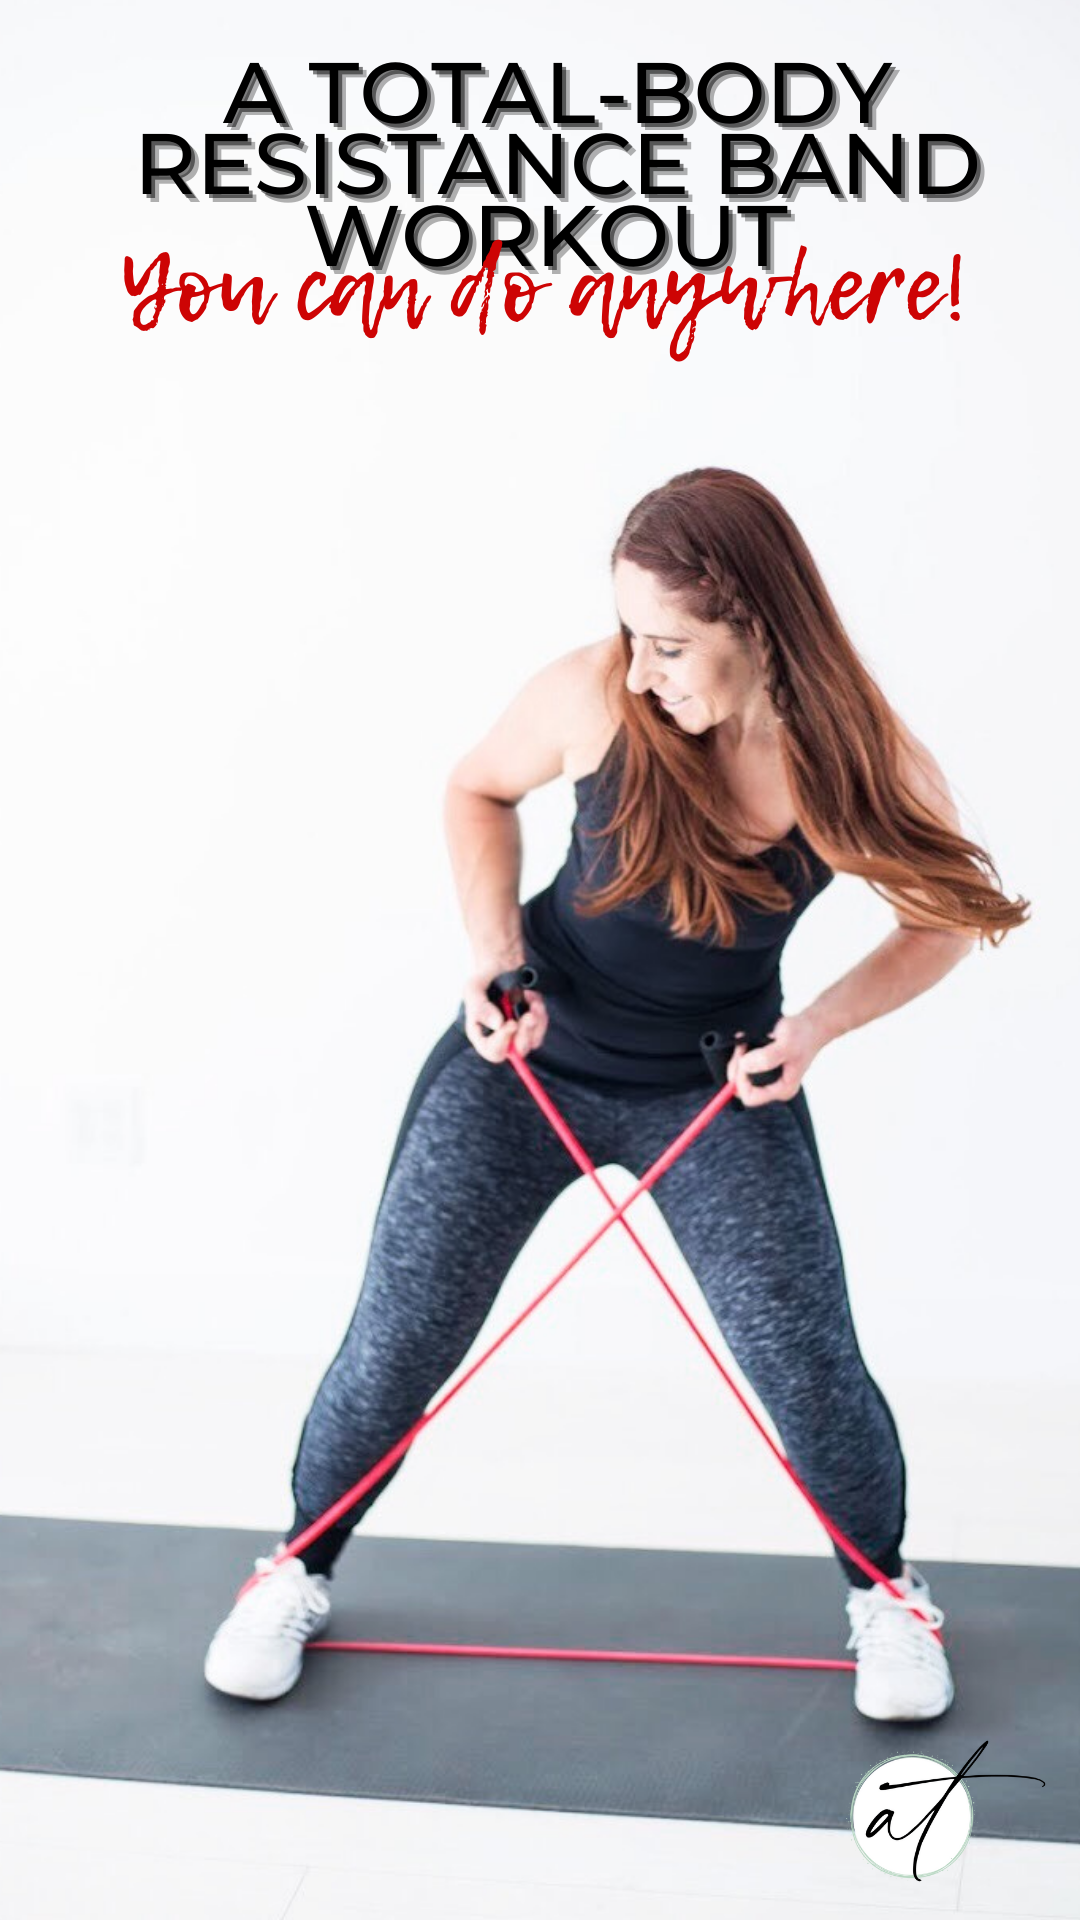 Total Body Resistance Band Workout! - Strength train wherever you may be! With this full-body sculpting resistance band workout!